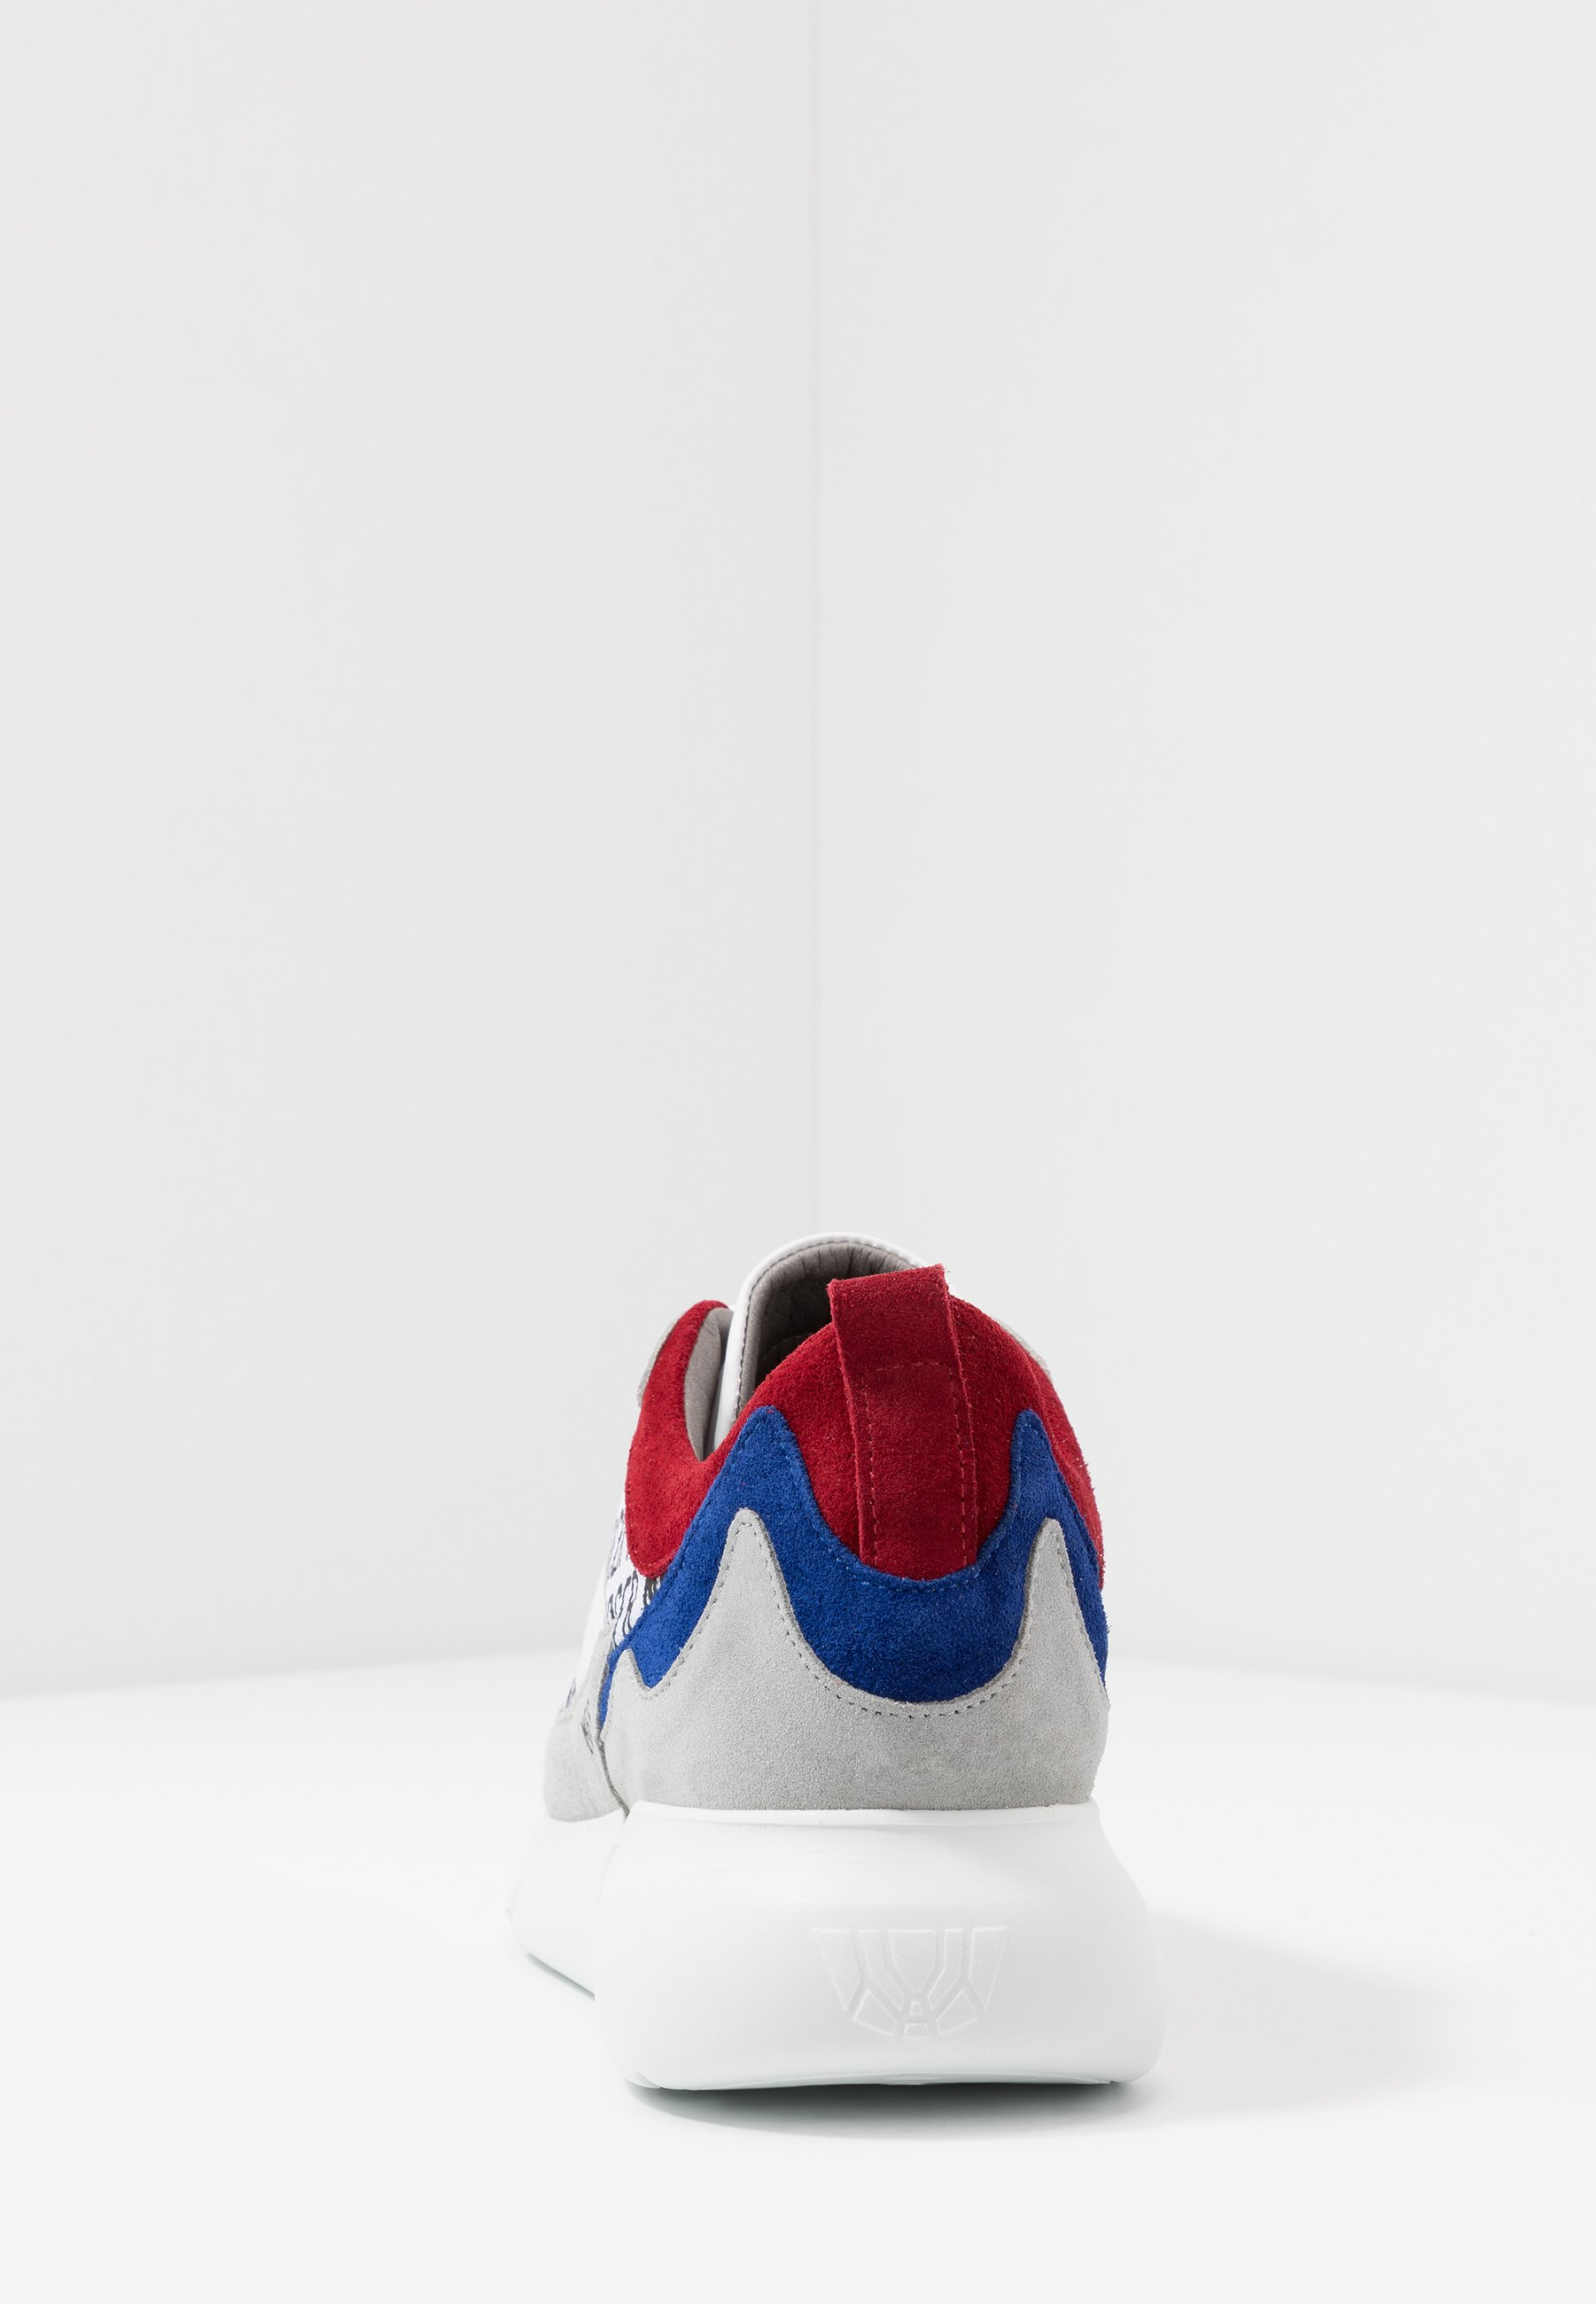 Mercer Amsterdam Sneakers Basse - Red/blue/grey Scarpe Scontate